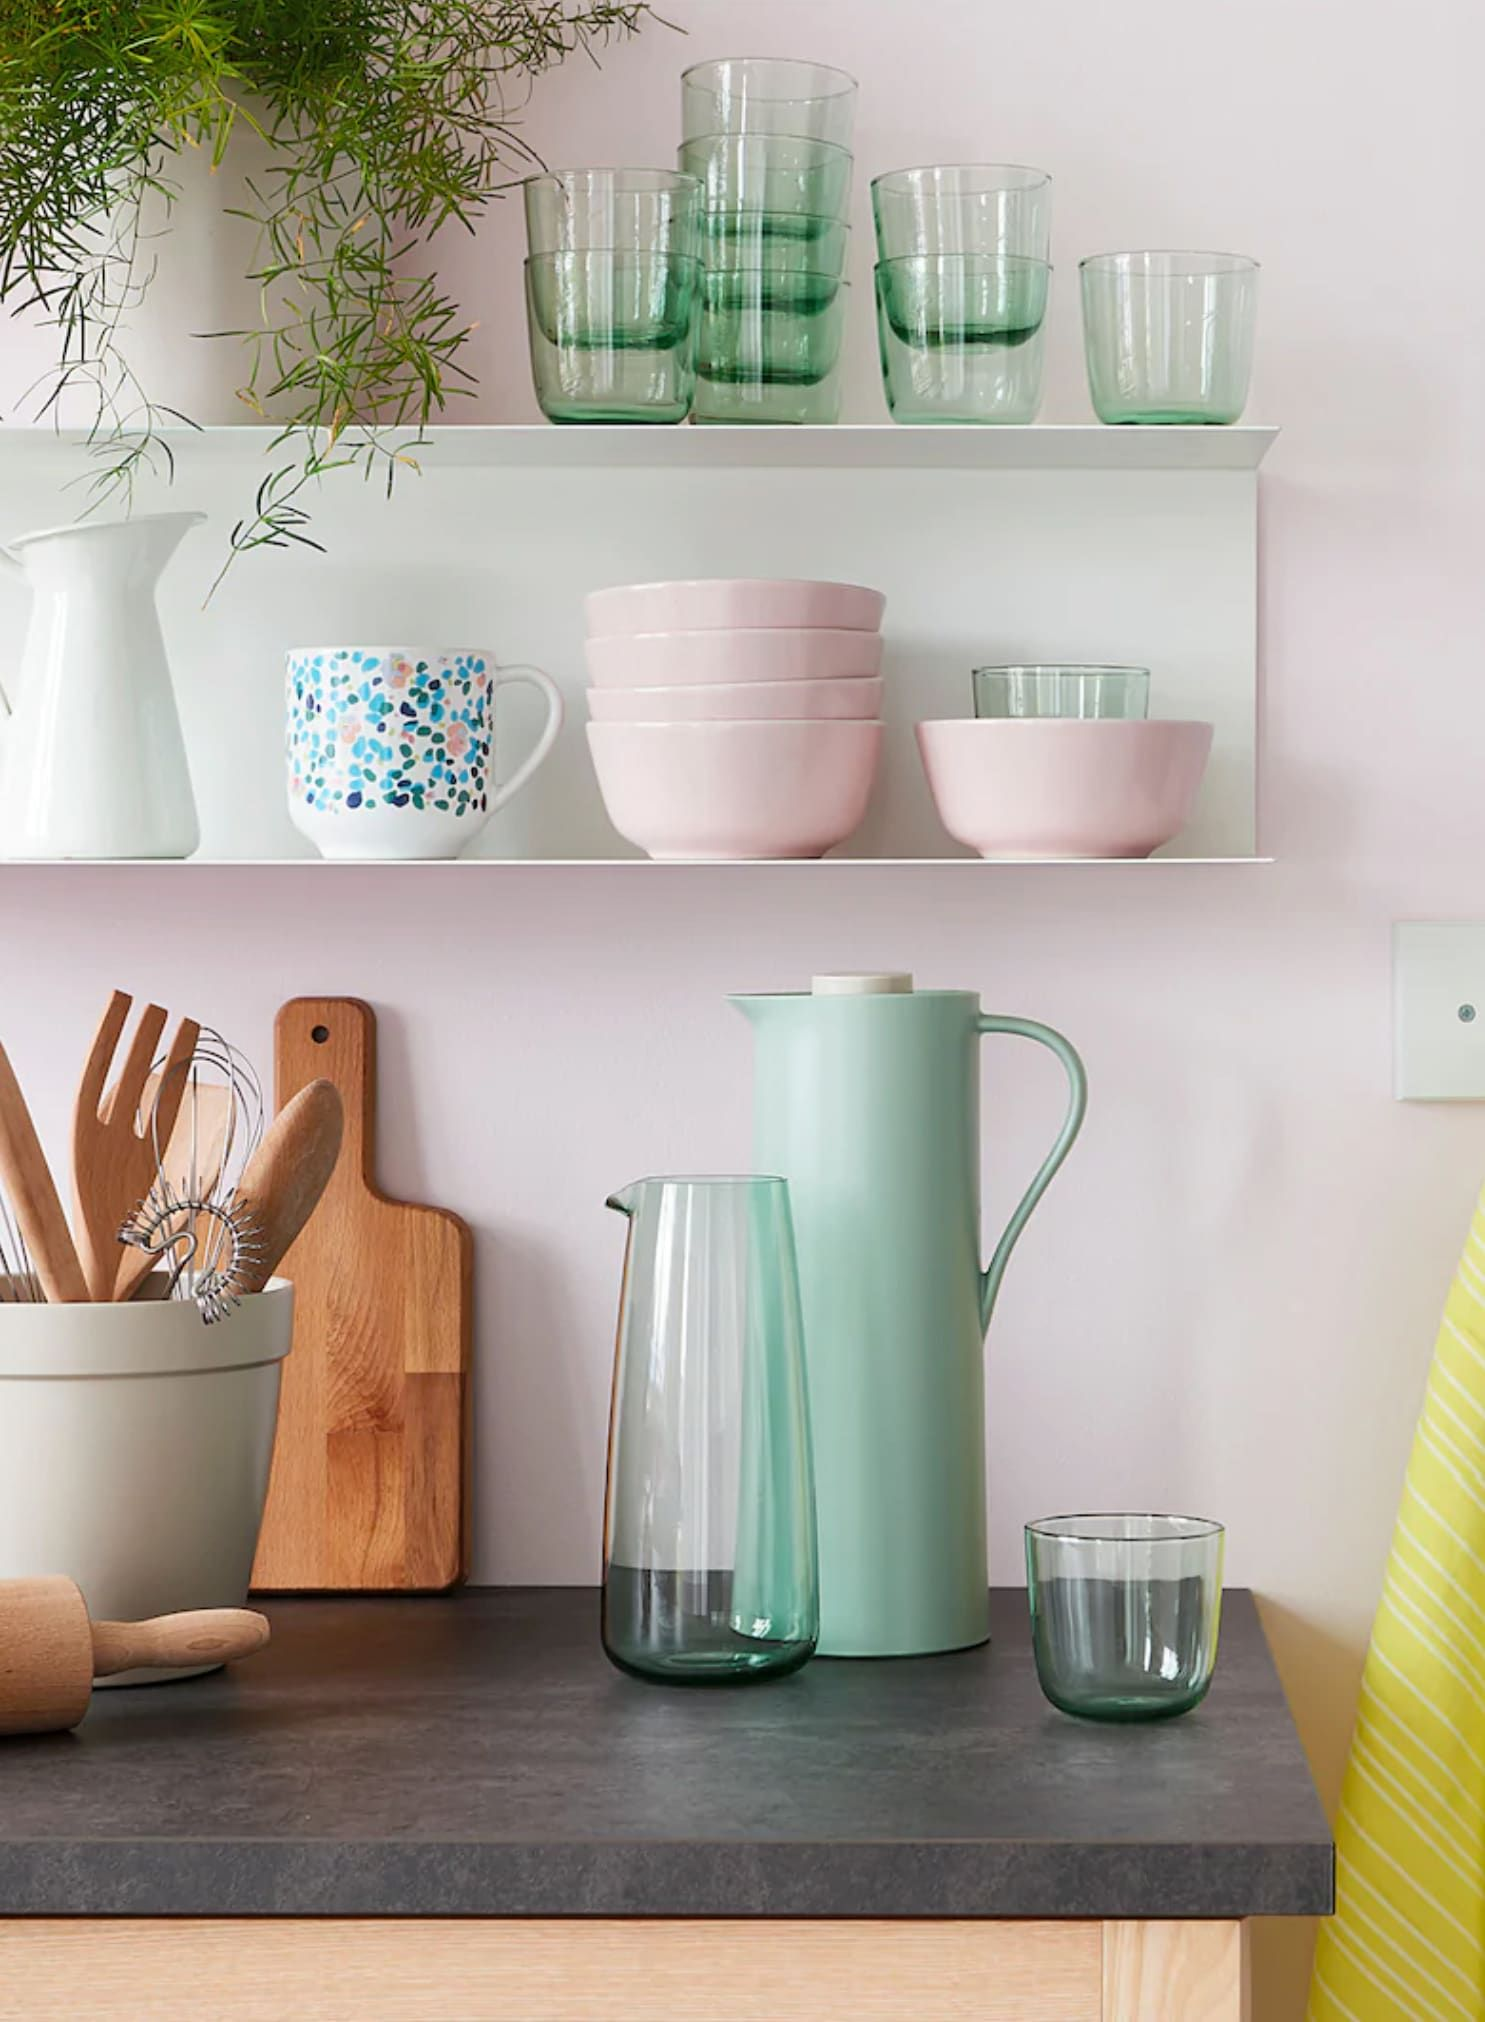 10 Cheap Ikea Home Essentials That Are Perfect for the Kitchen